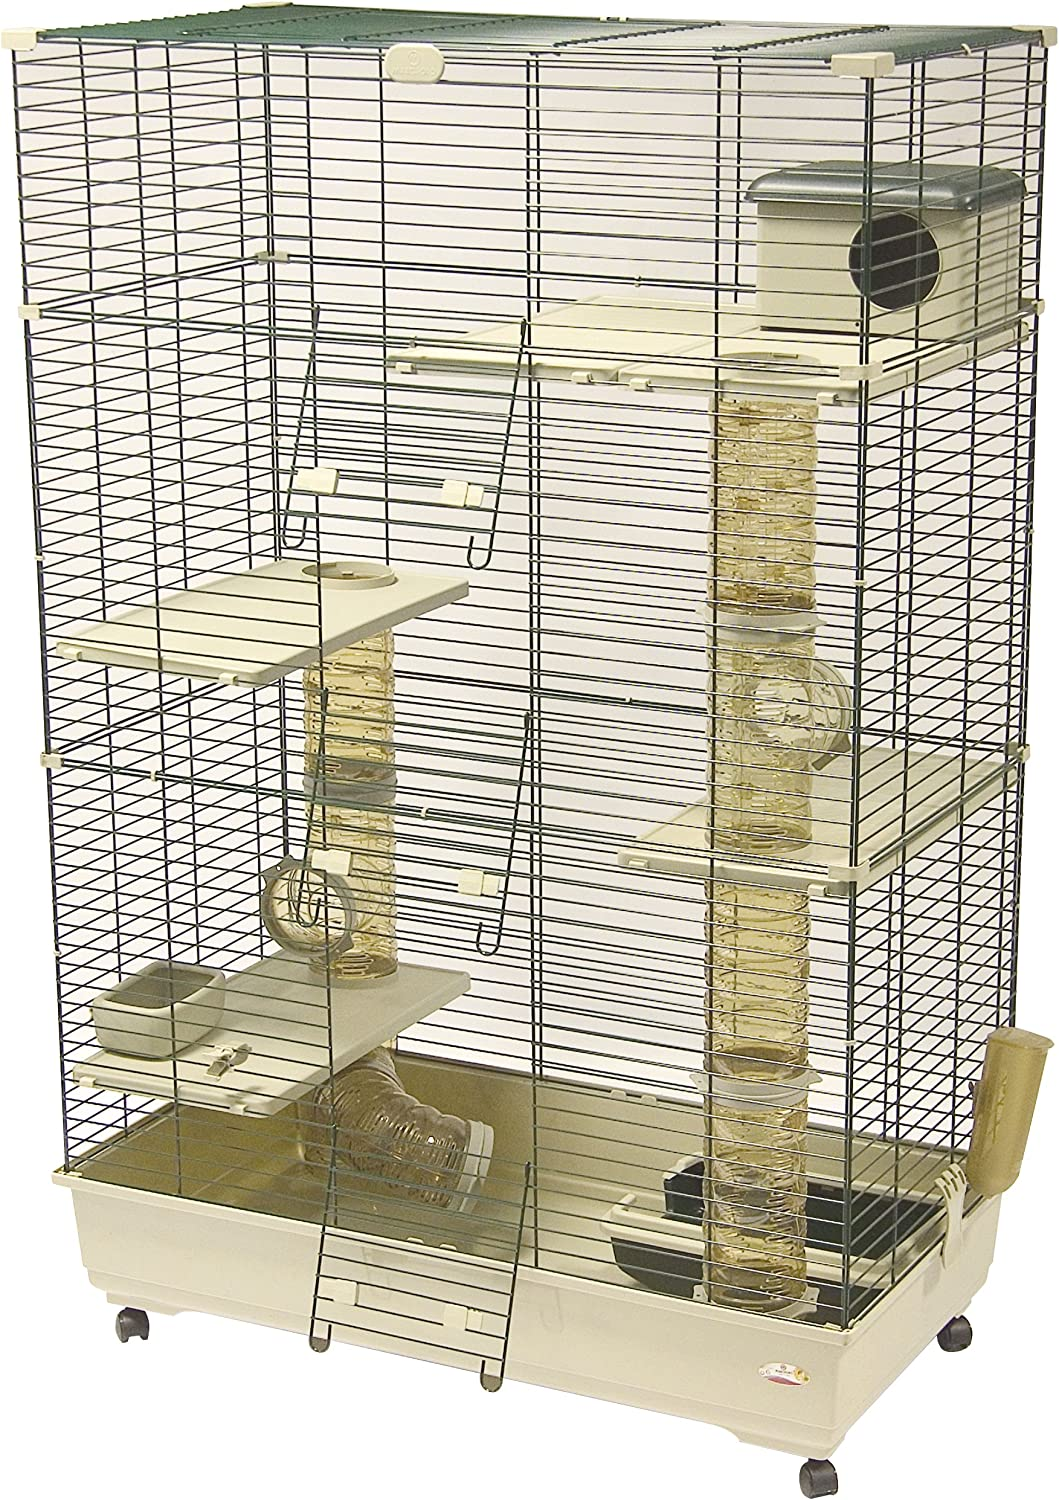 B000CQG466 Marchioro Sara 102 C3 Cage for Small Animals with Wheels, 40.25 inches, Beige/Green 91z7itBuVDL.SL1500_